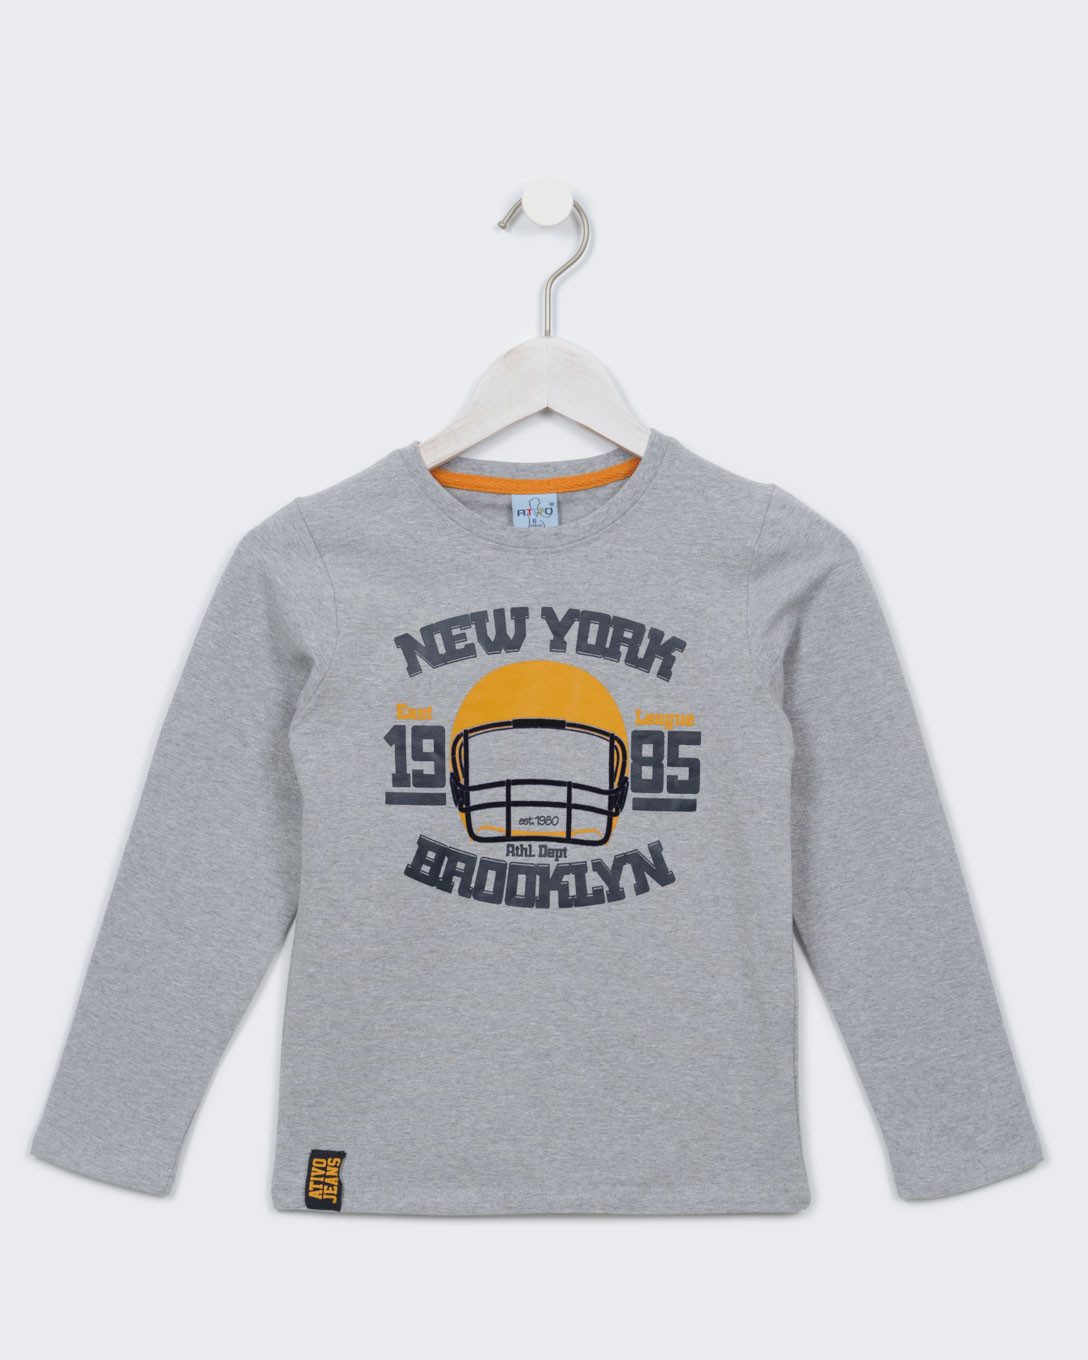 Ativo - T-shirt New York